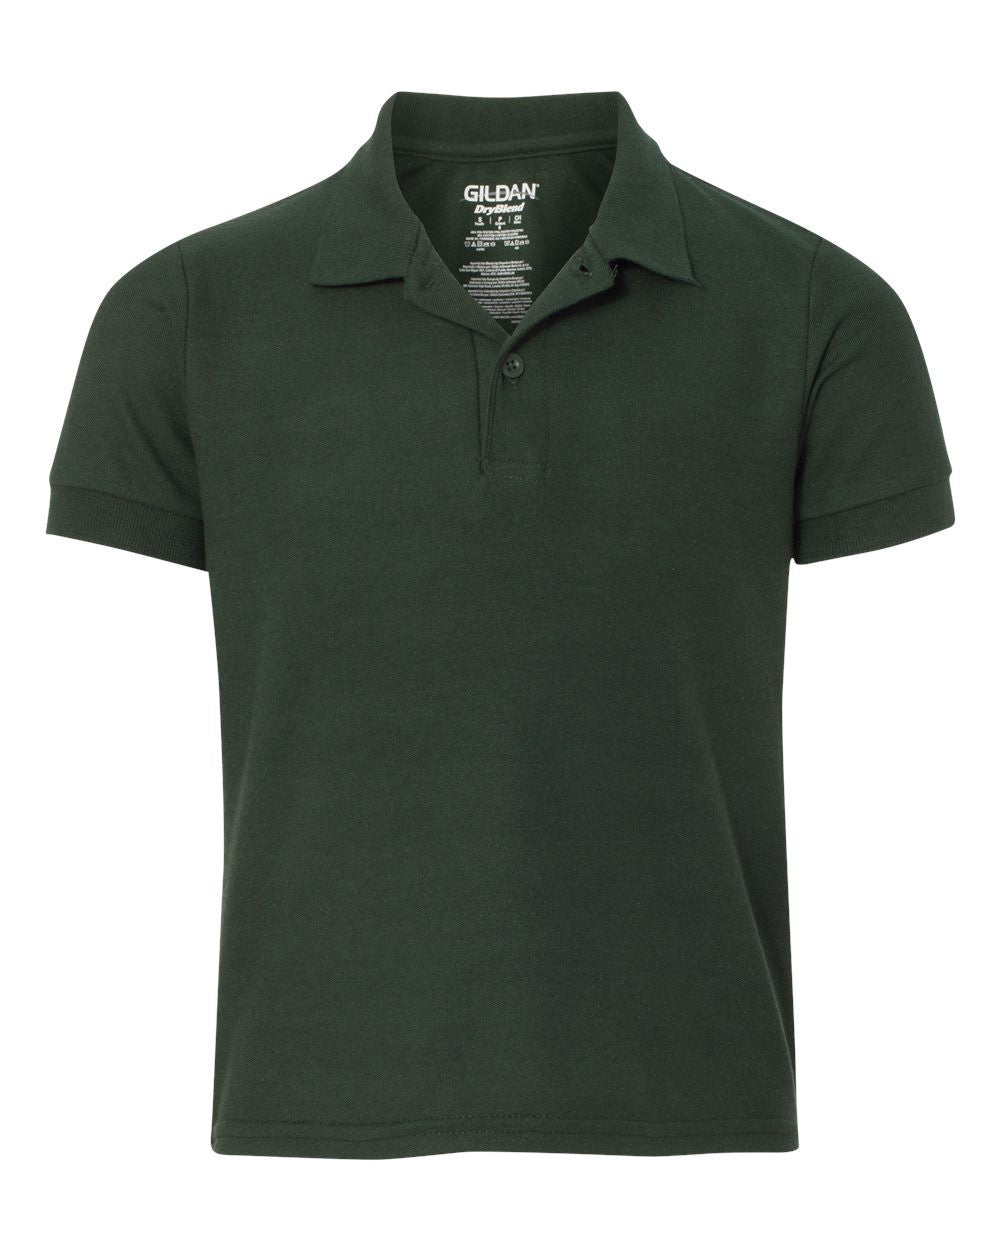 Gildan Double Pique Sports Shirt - Discountedrack.com